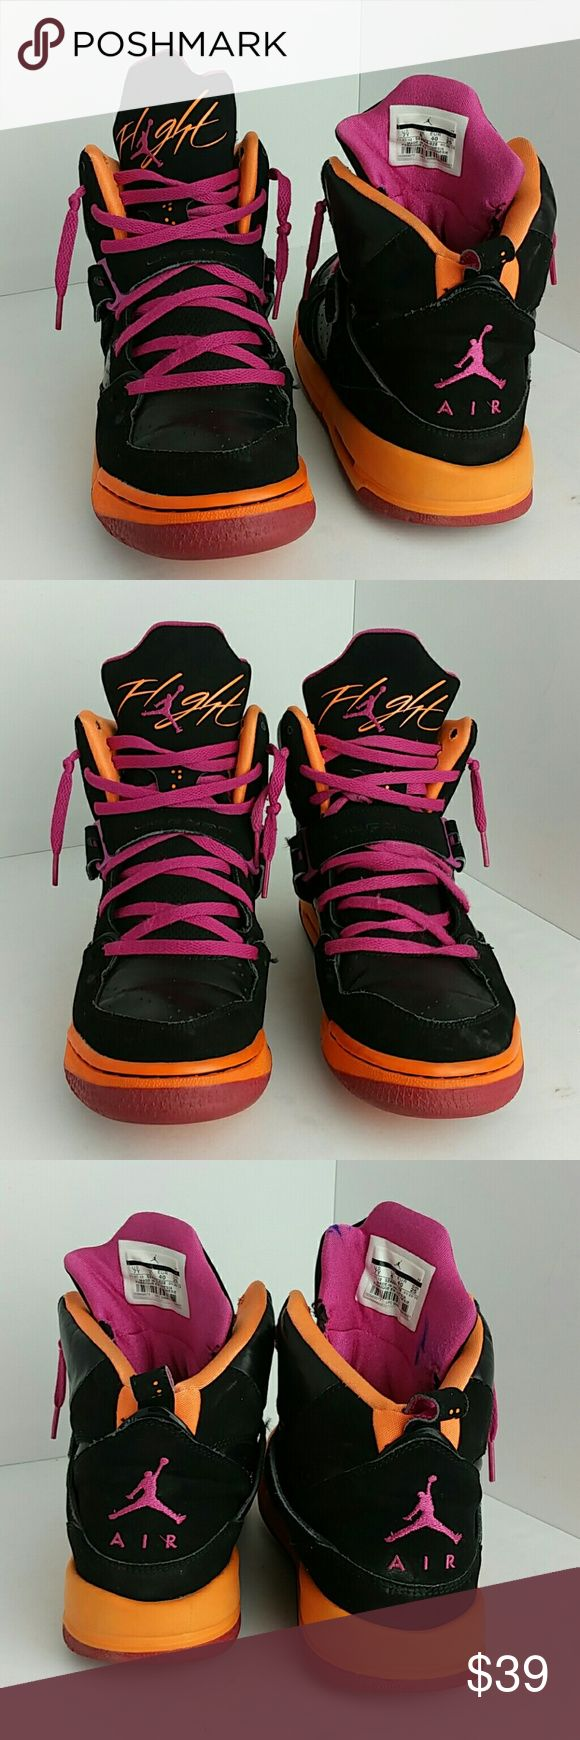 AIR JORDAN FLIGHT WOMEN/YOUTH SHOES IN GOOD CONDITION THIS IS A YOUTH SIZE 7Y WHICH IS WOMEN SIZE 8.5 SKE # BK Air Jordan Shoes Athletic Shoes